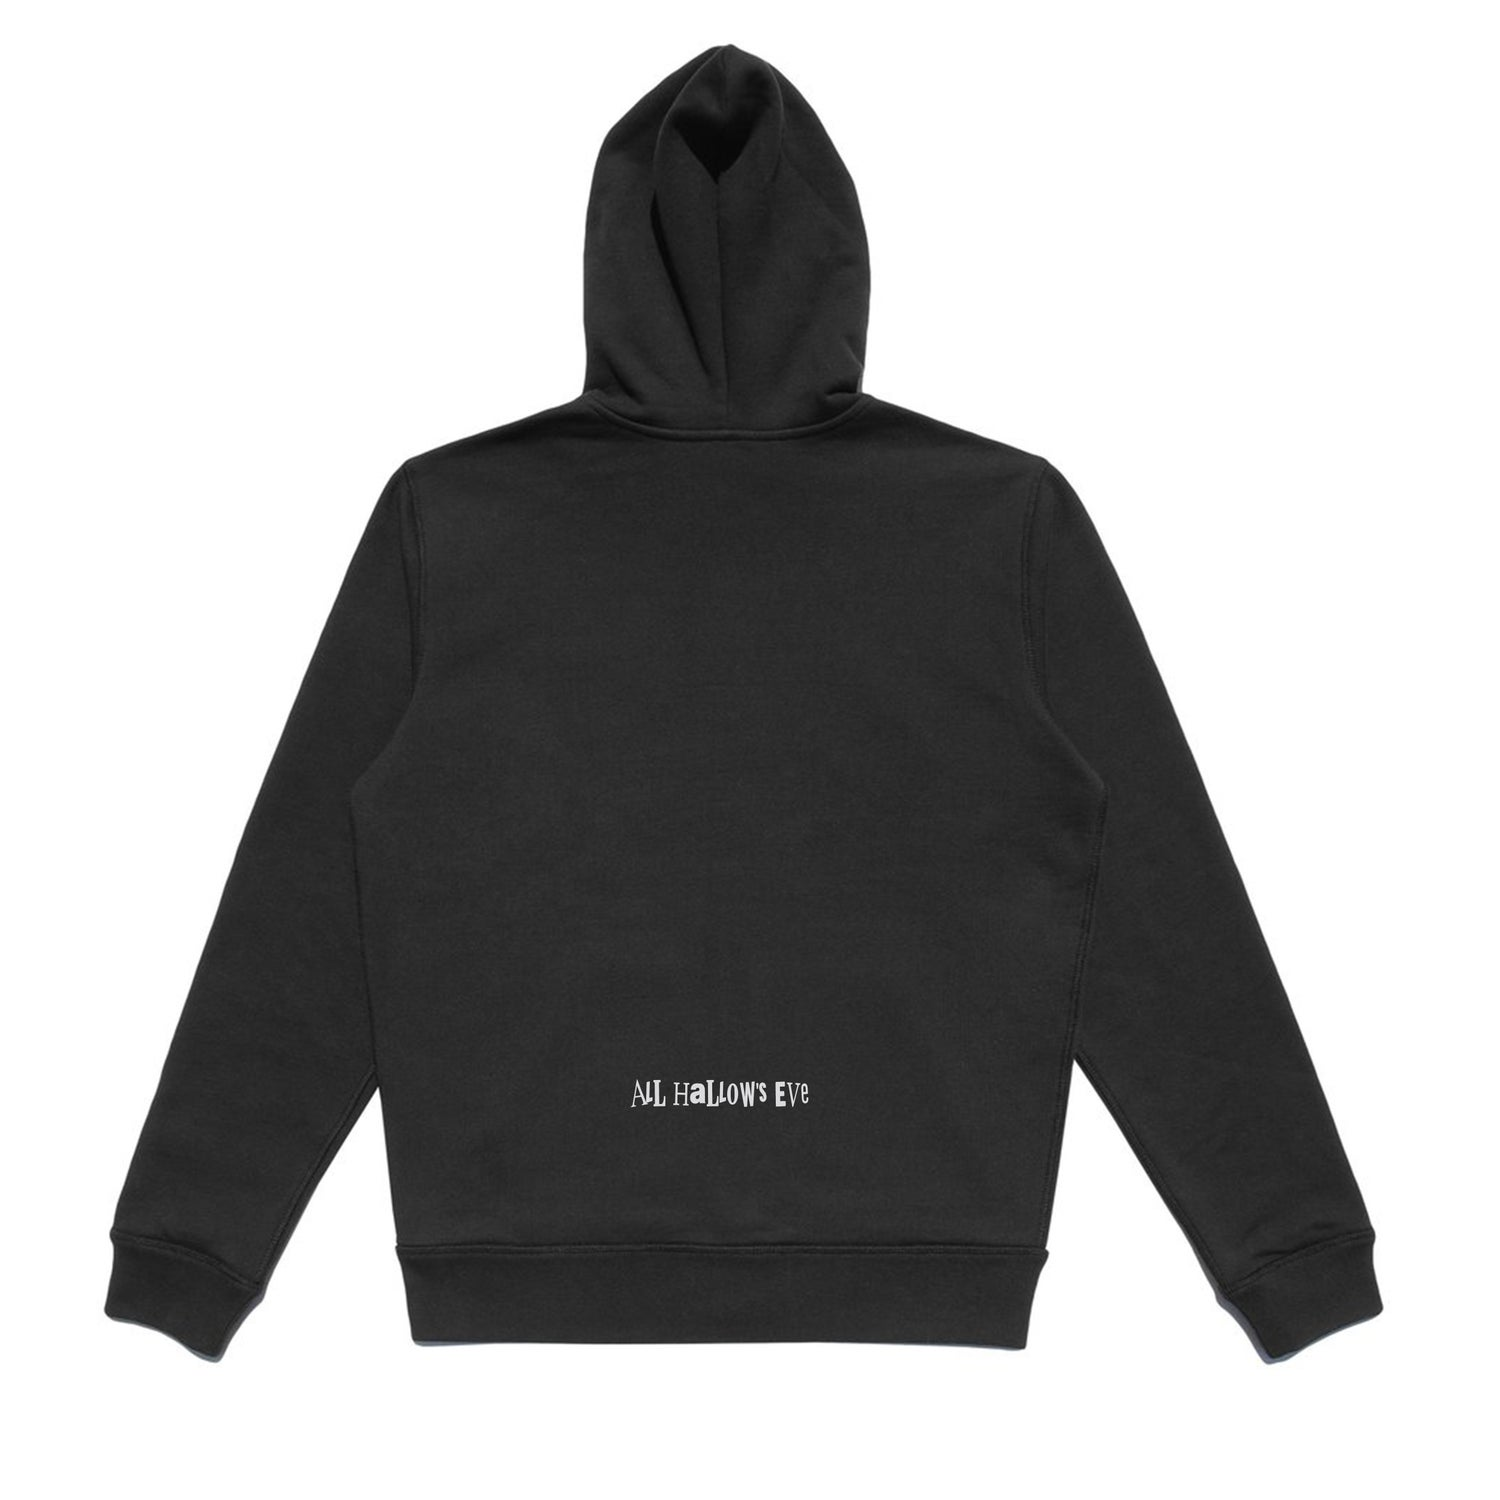 Image of All Hallow's Eve body bag zip up